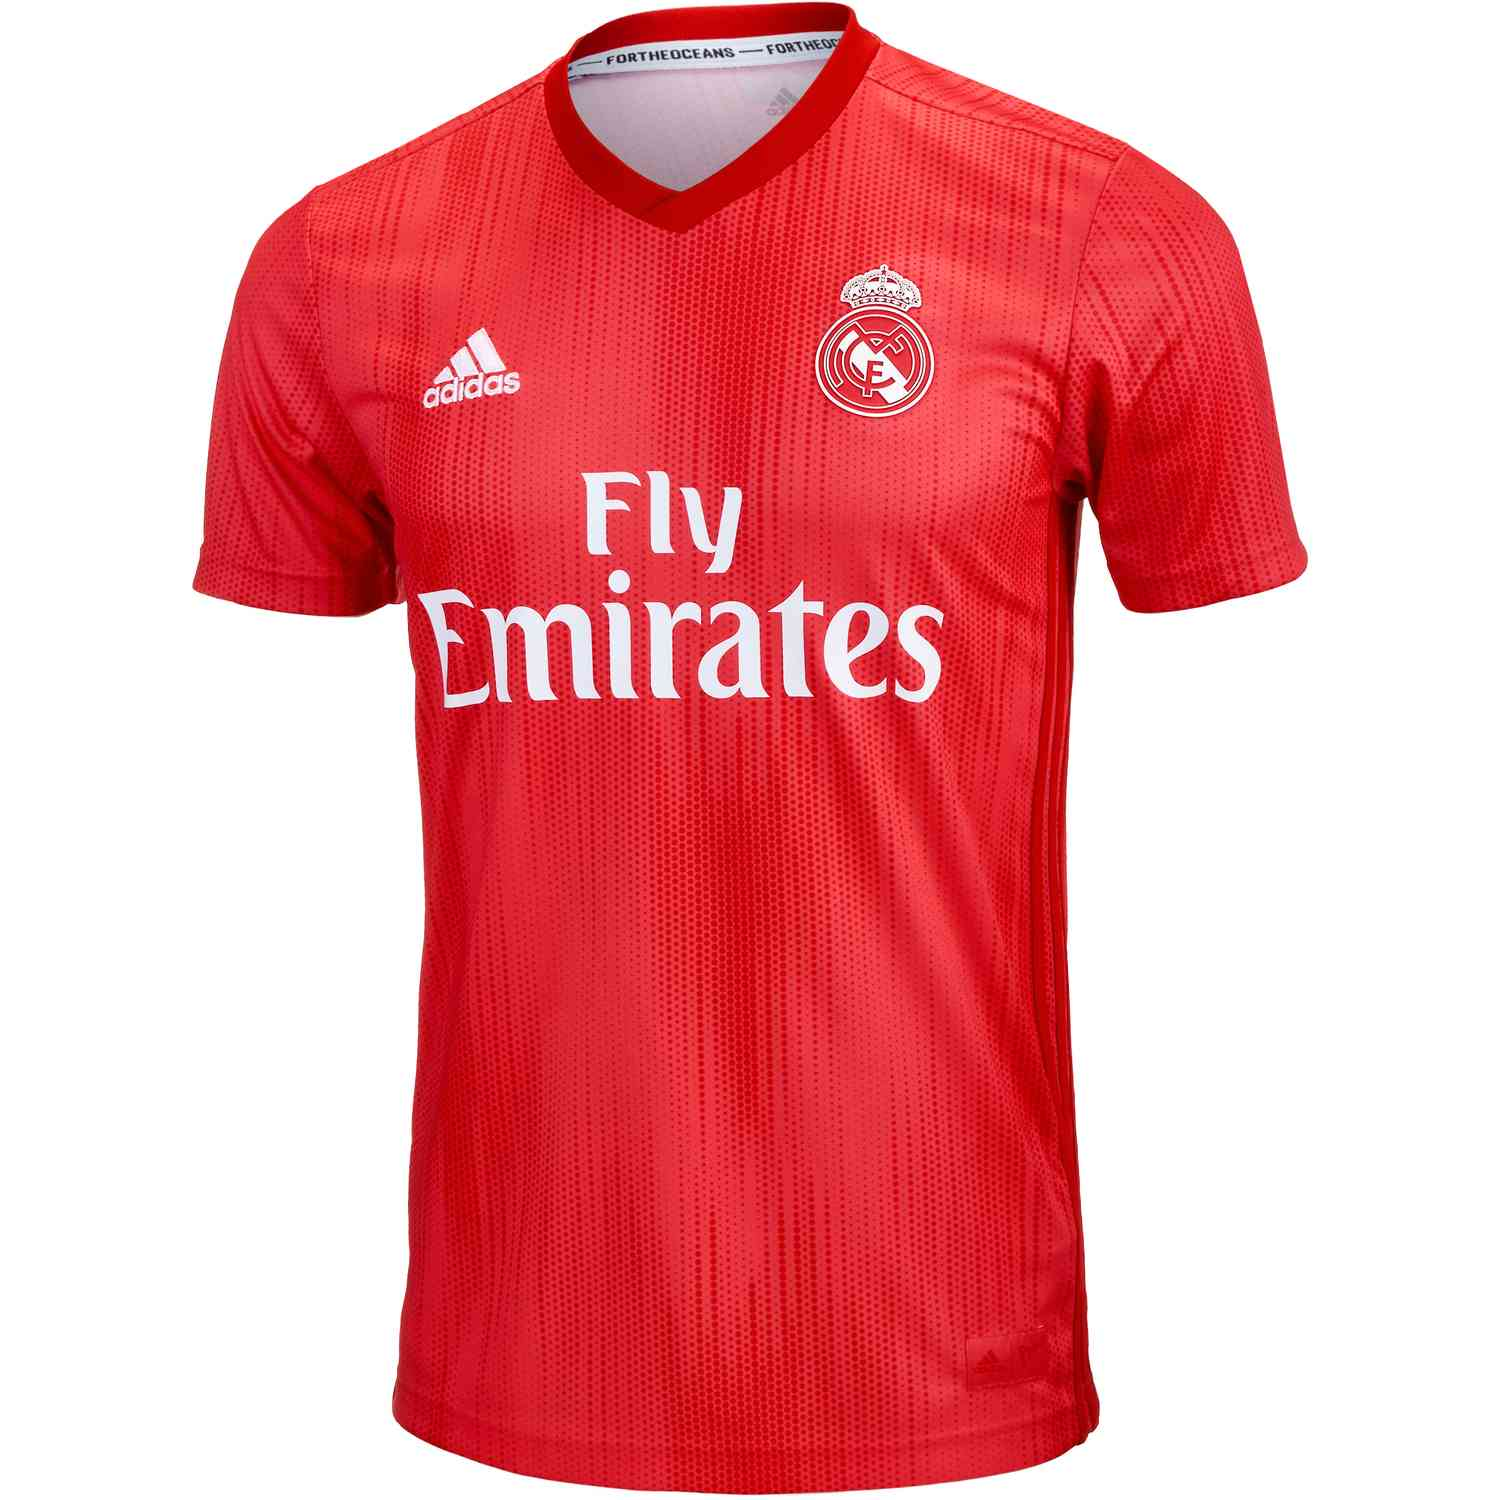 27a2bc7dc Real Madrid 3rd Jersey - Buy best